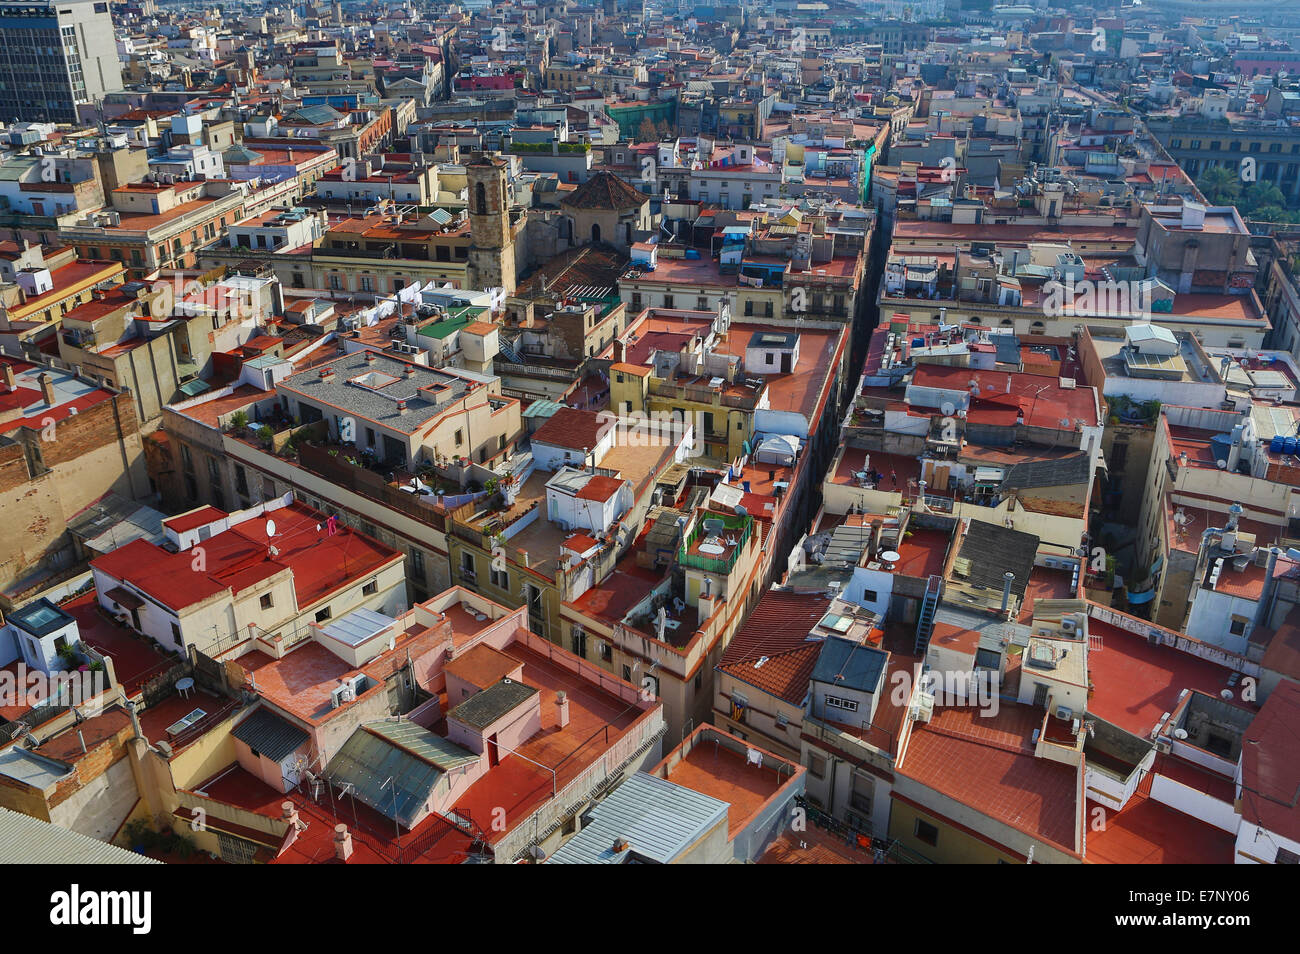 Barcelona, Catalonia, City, Ciutat Vella, Old Town, Spain, Europe, agbar, architecture, downtown, roofs, skyline, - Stock Image